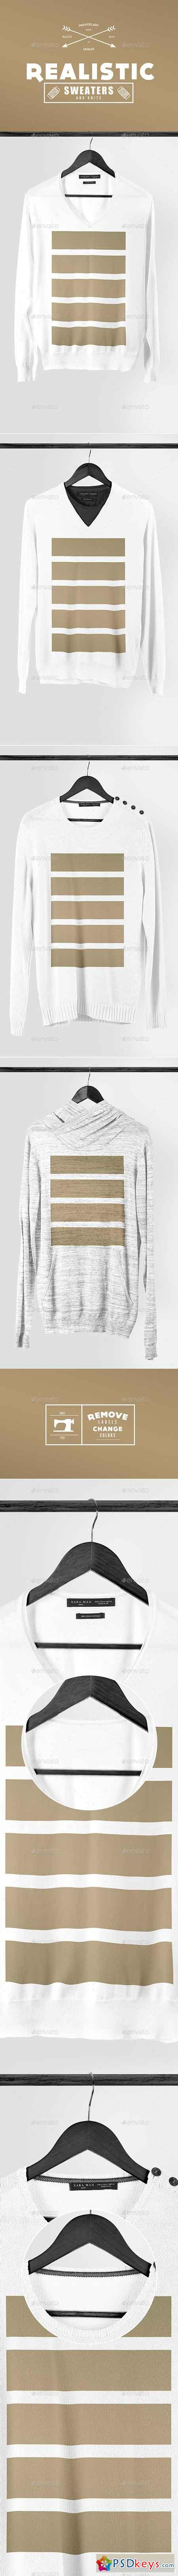 Realistic Sweaters & Knits Mock-up Pack 8561366